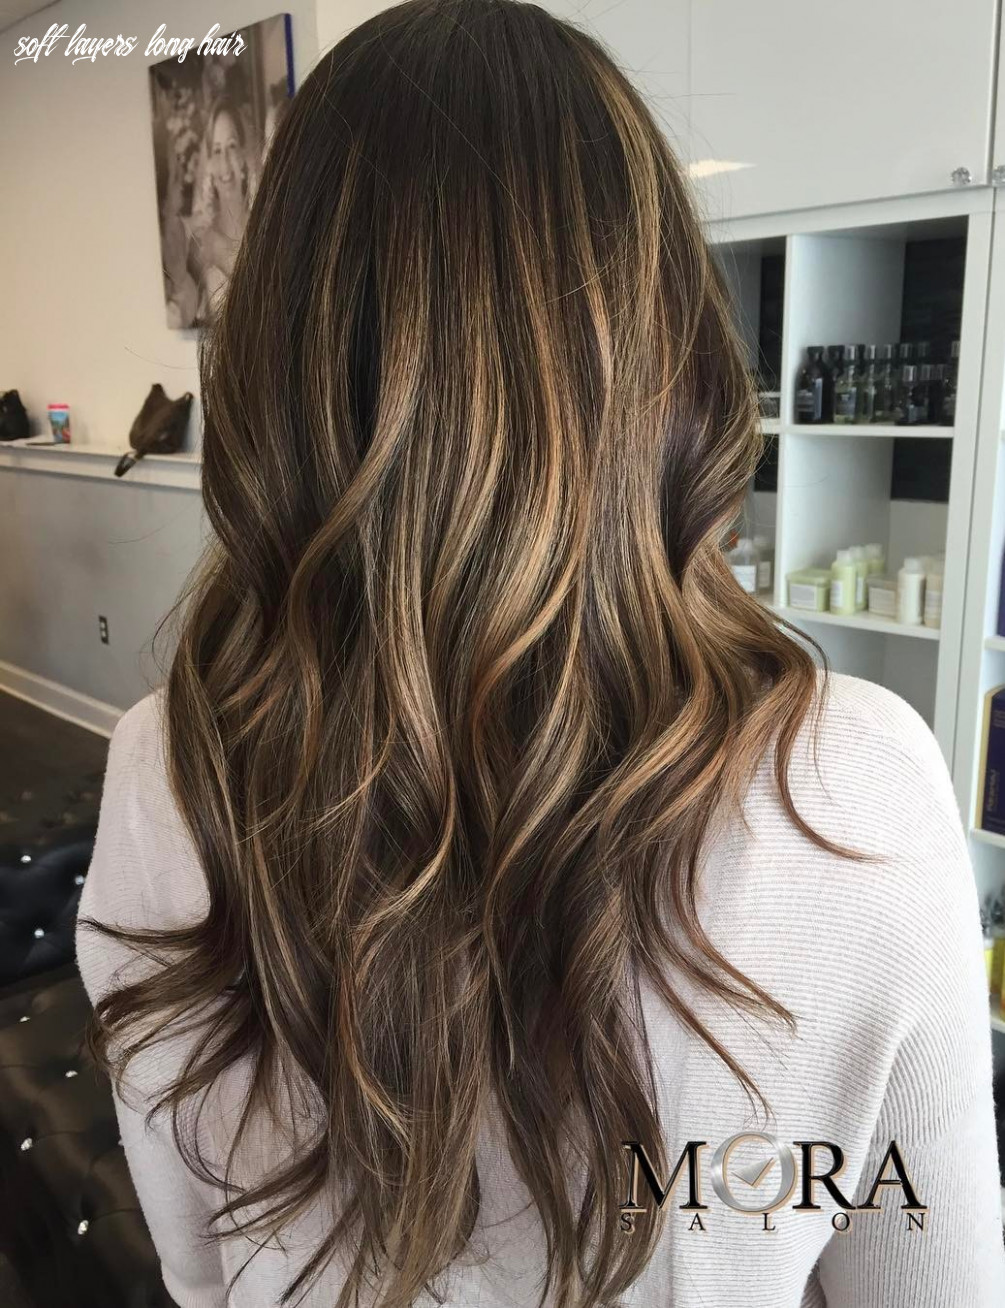 10 NEW Long Hairstyles with Layers for 10 - Hair Adviser